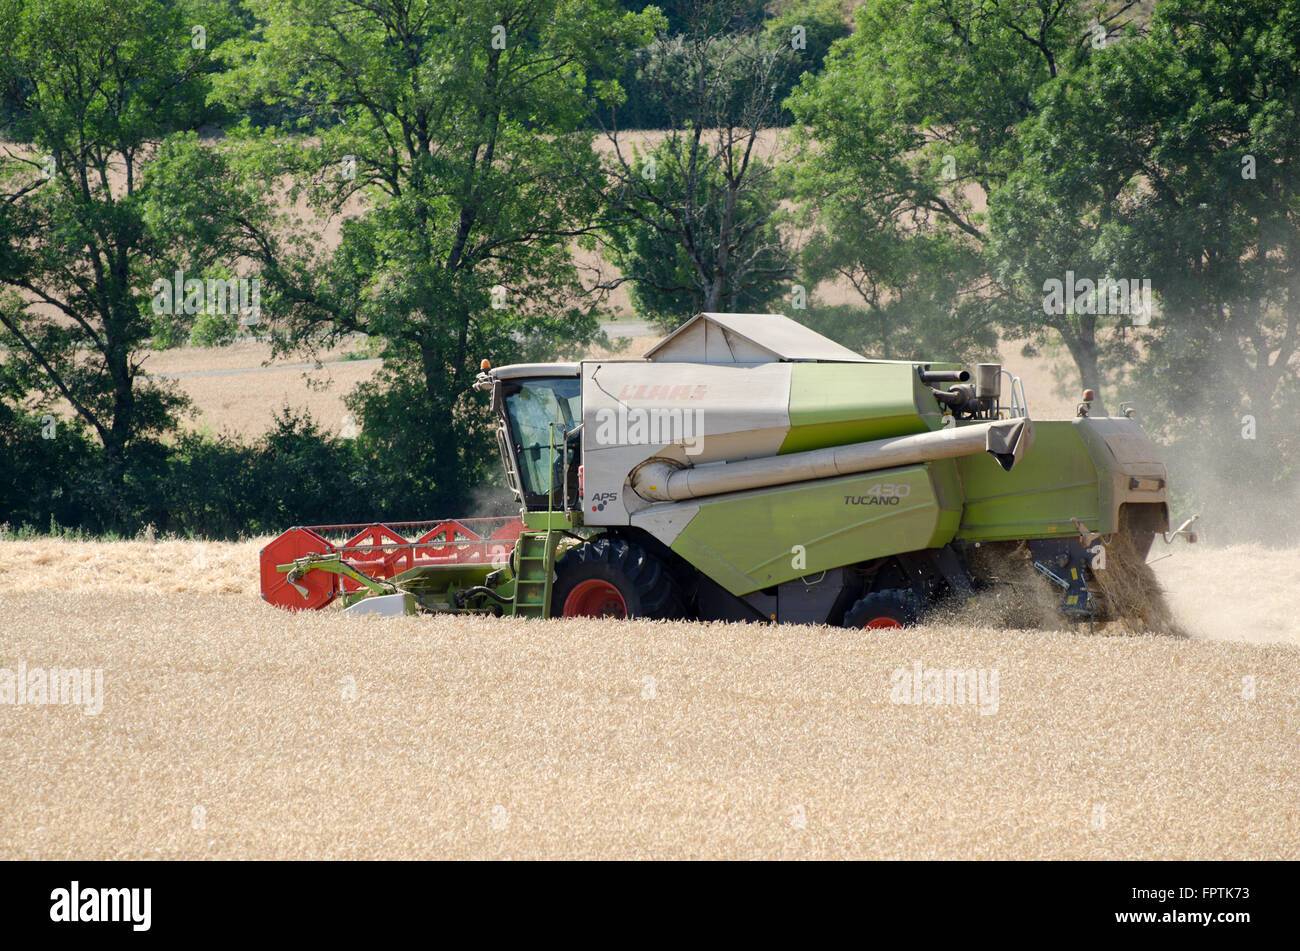 Combine harvester in a field in France - Stock Image